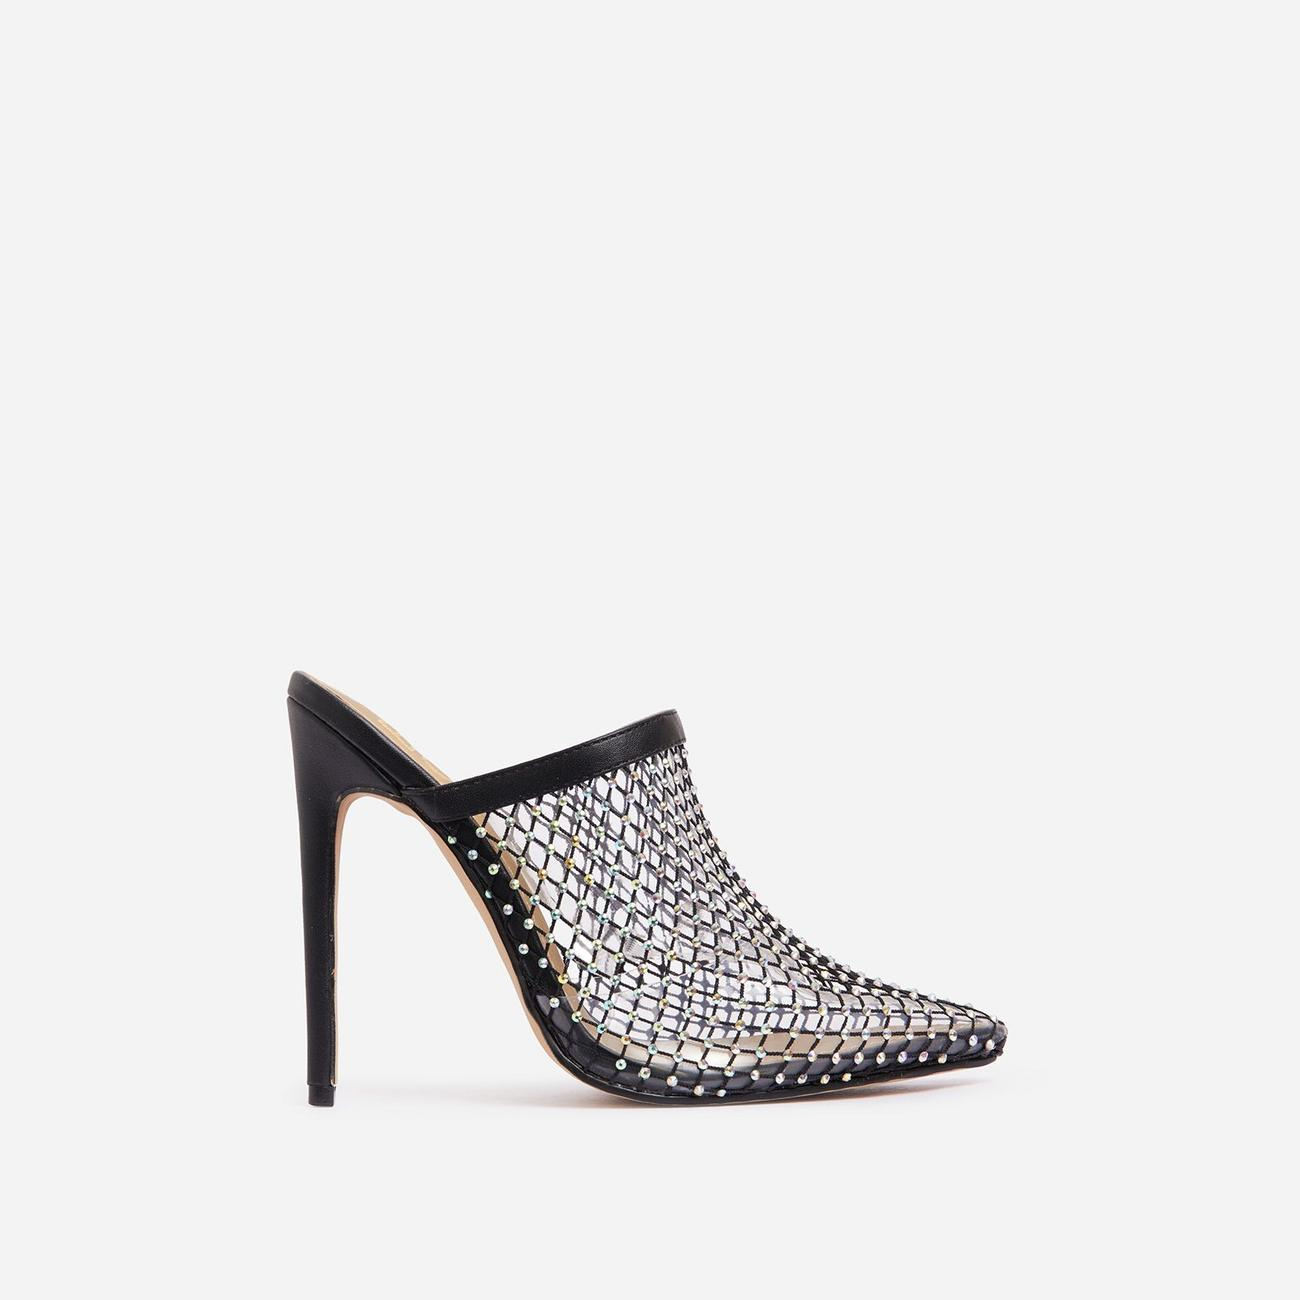 Forgiven Diamante Detail Fishnet Pointed Toe Heel Mule In Black Faux Leather Image 1